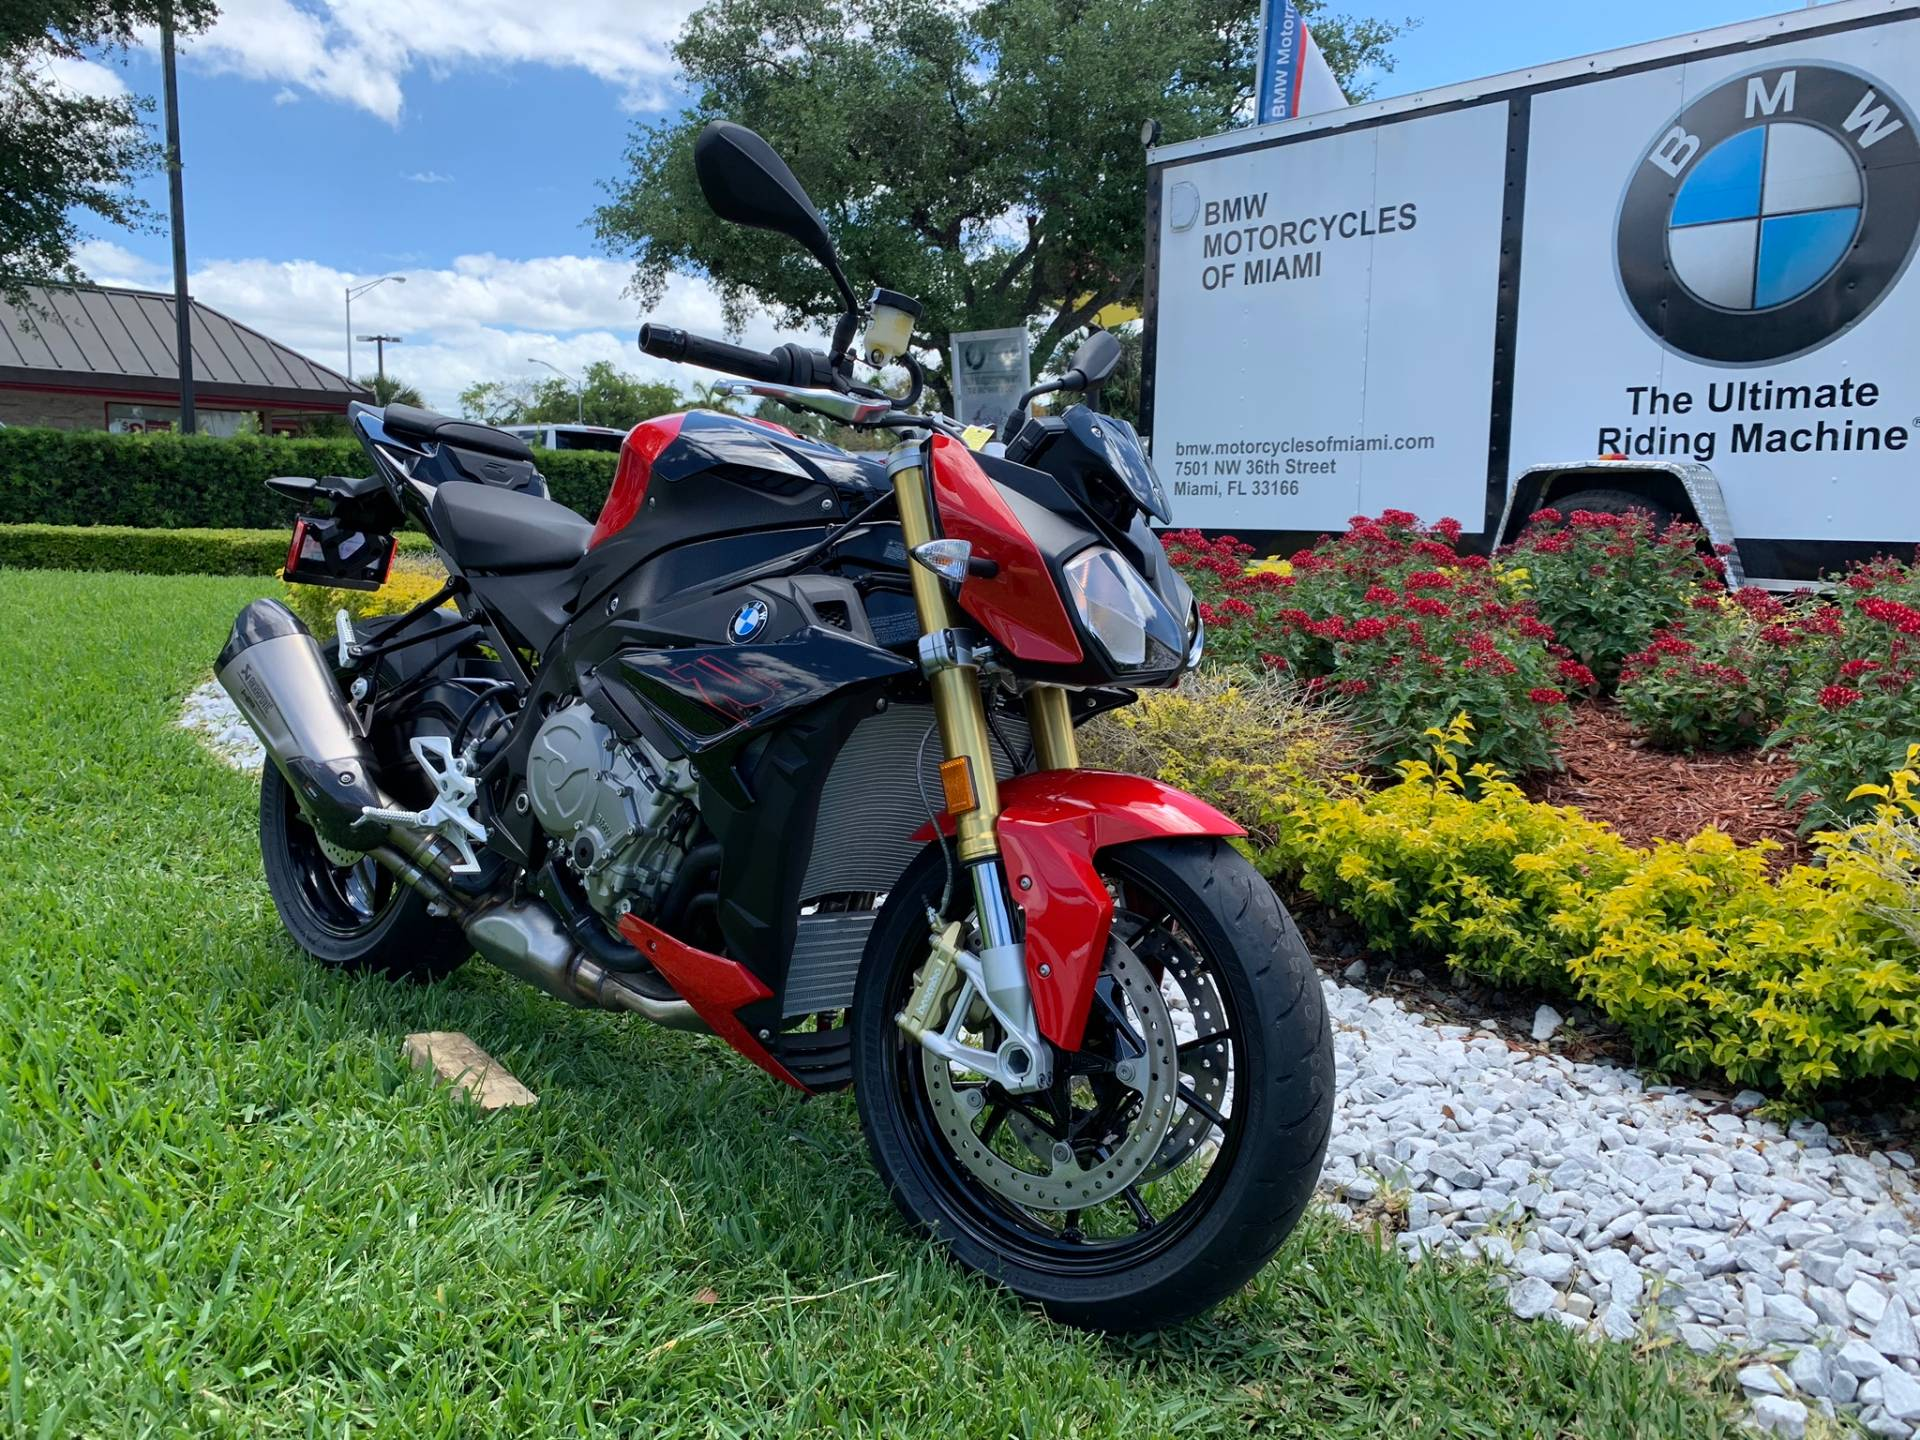 New 2019 BMW S 1000 R for sale, BMW S 1000R for sale, BMW Motorcycle S1000R, new BMW R, Sport, roadster, naked. BMW Motorcycles of Miami, Motorcycles of Miami, Motorcycles Miami, New Motorcycles, Used Motorcycles, pre-owned. #BMWMotorcyclesOfMiami #MotorcyclesOfMiami #MotorcyclesMiami - Photo 1